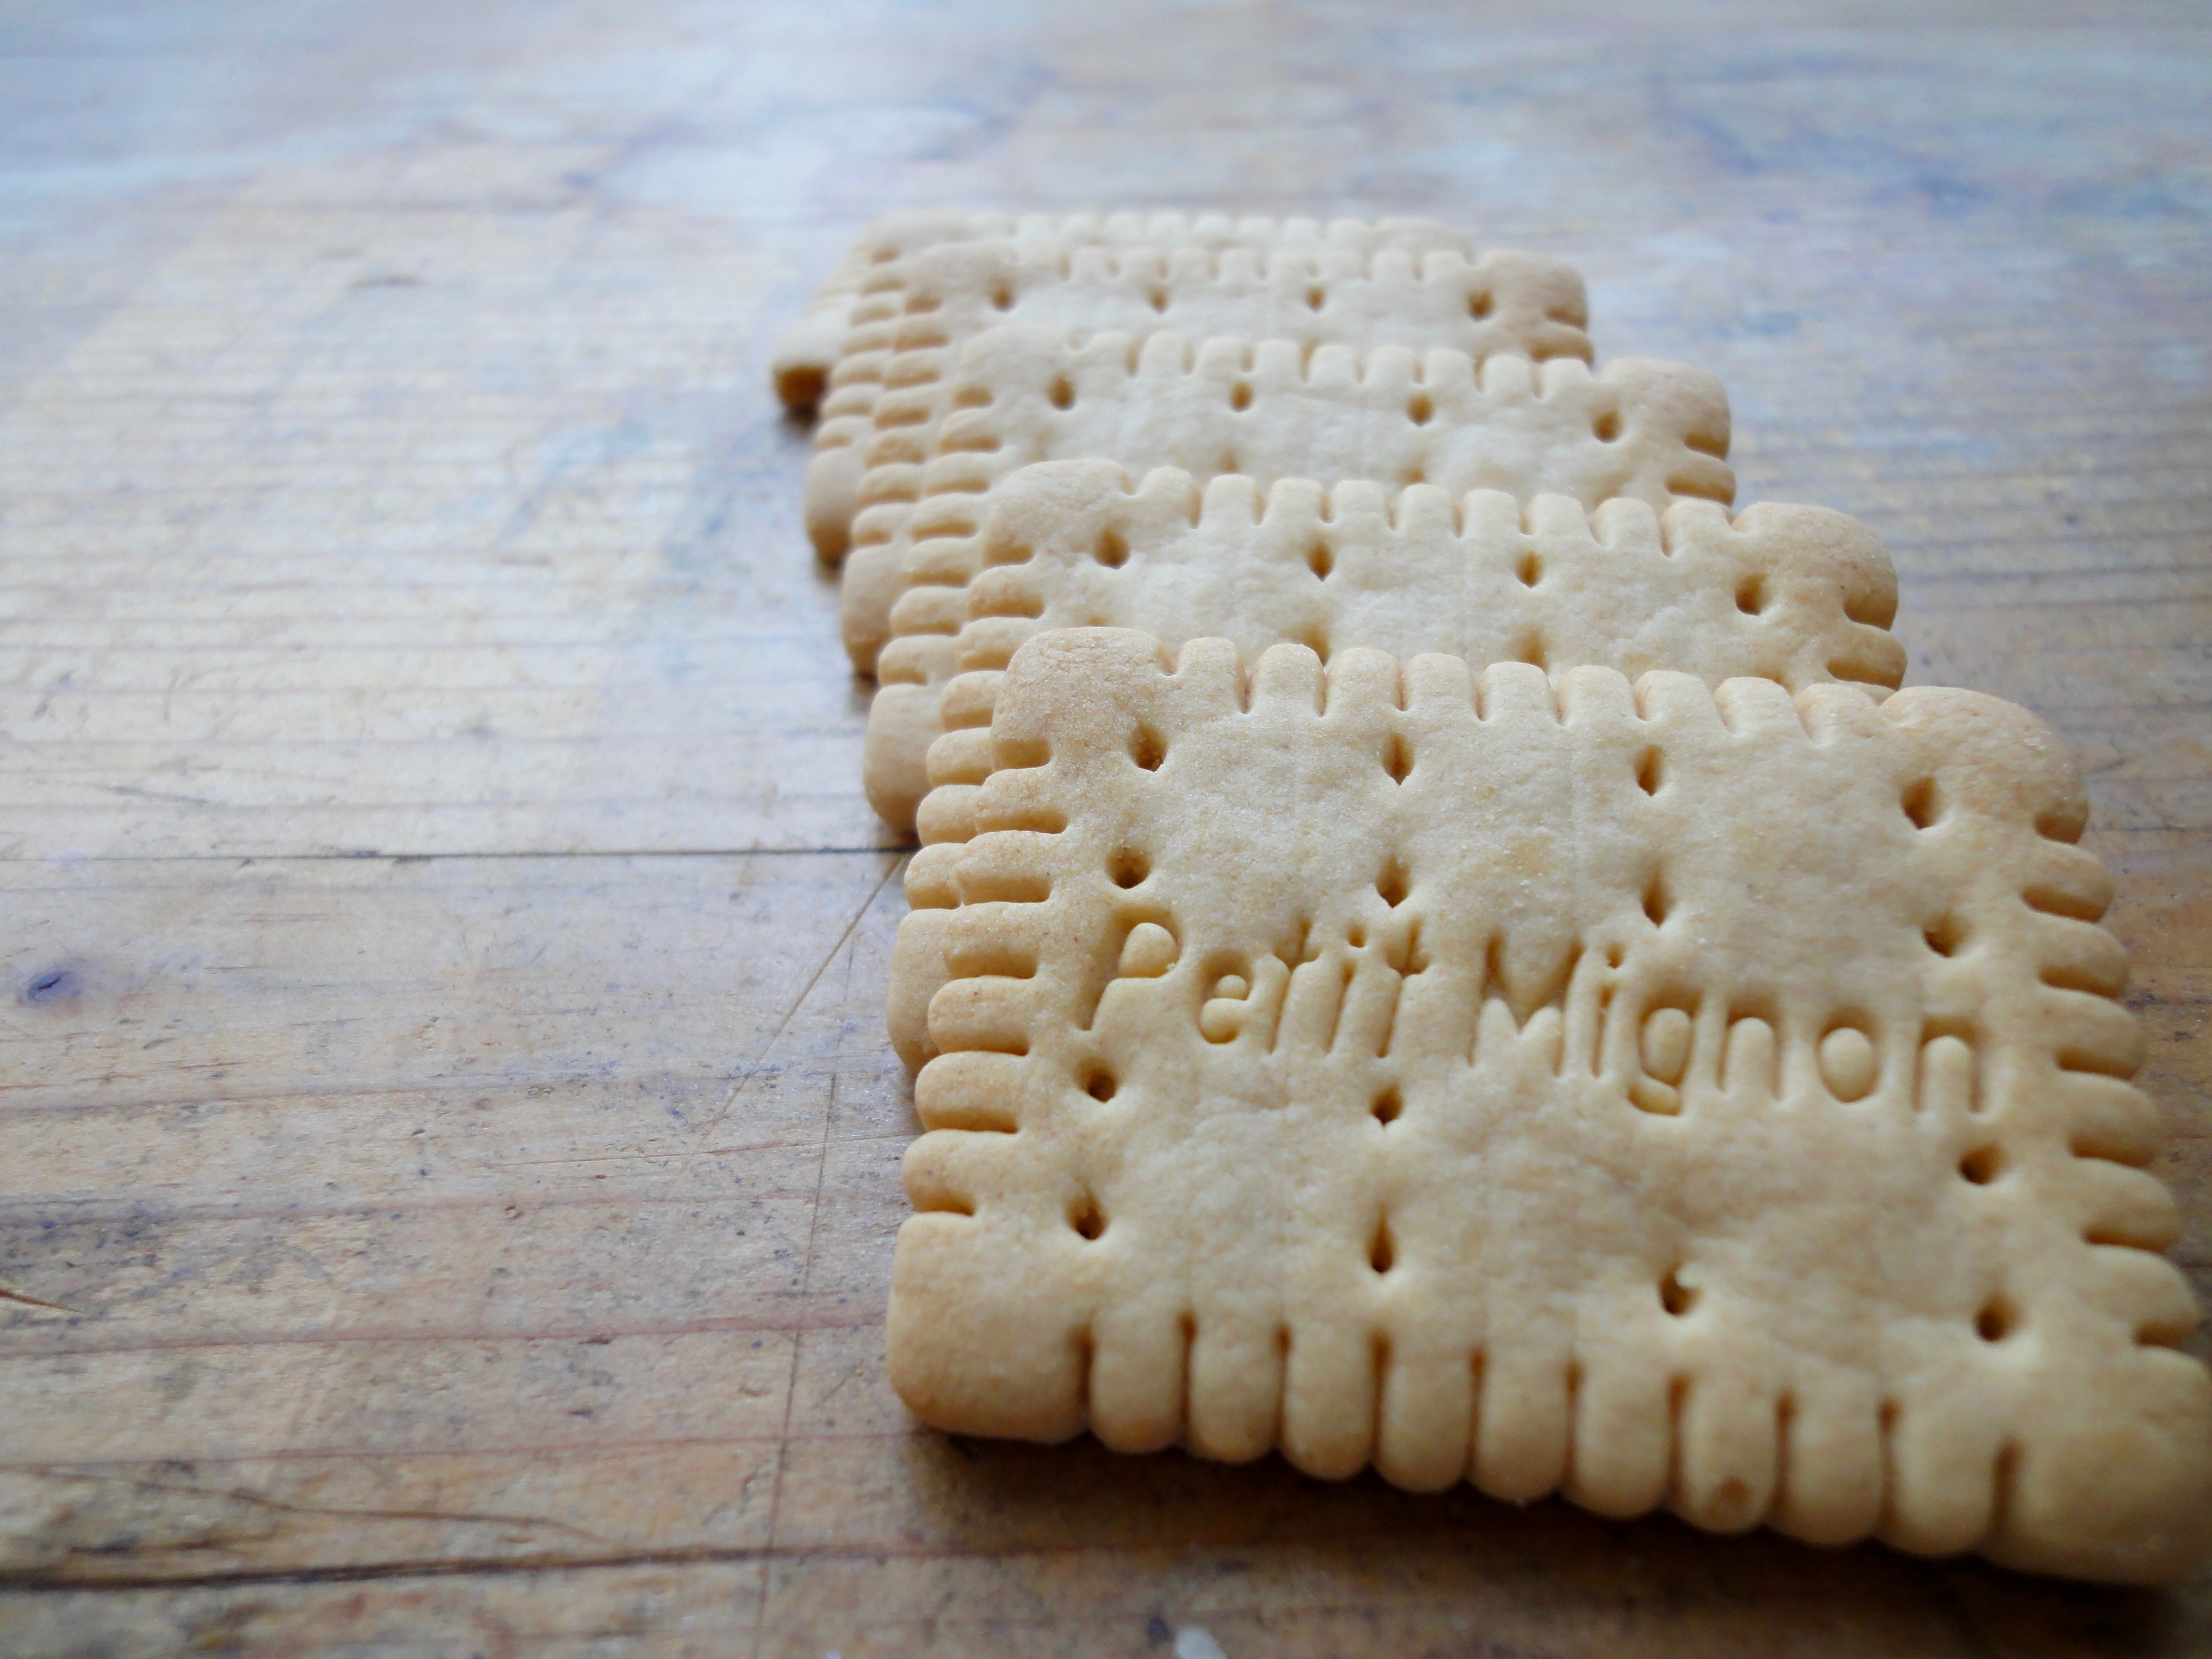 I used small petit beurre's called petit mignon's here.